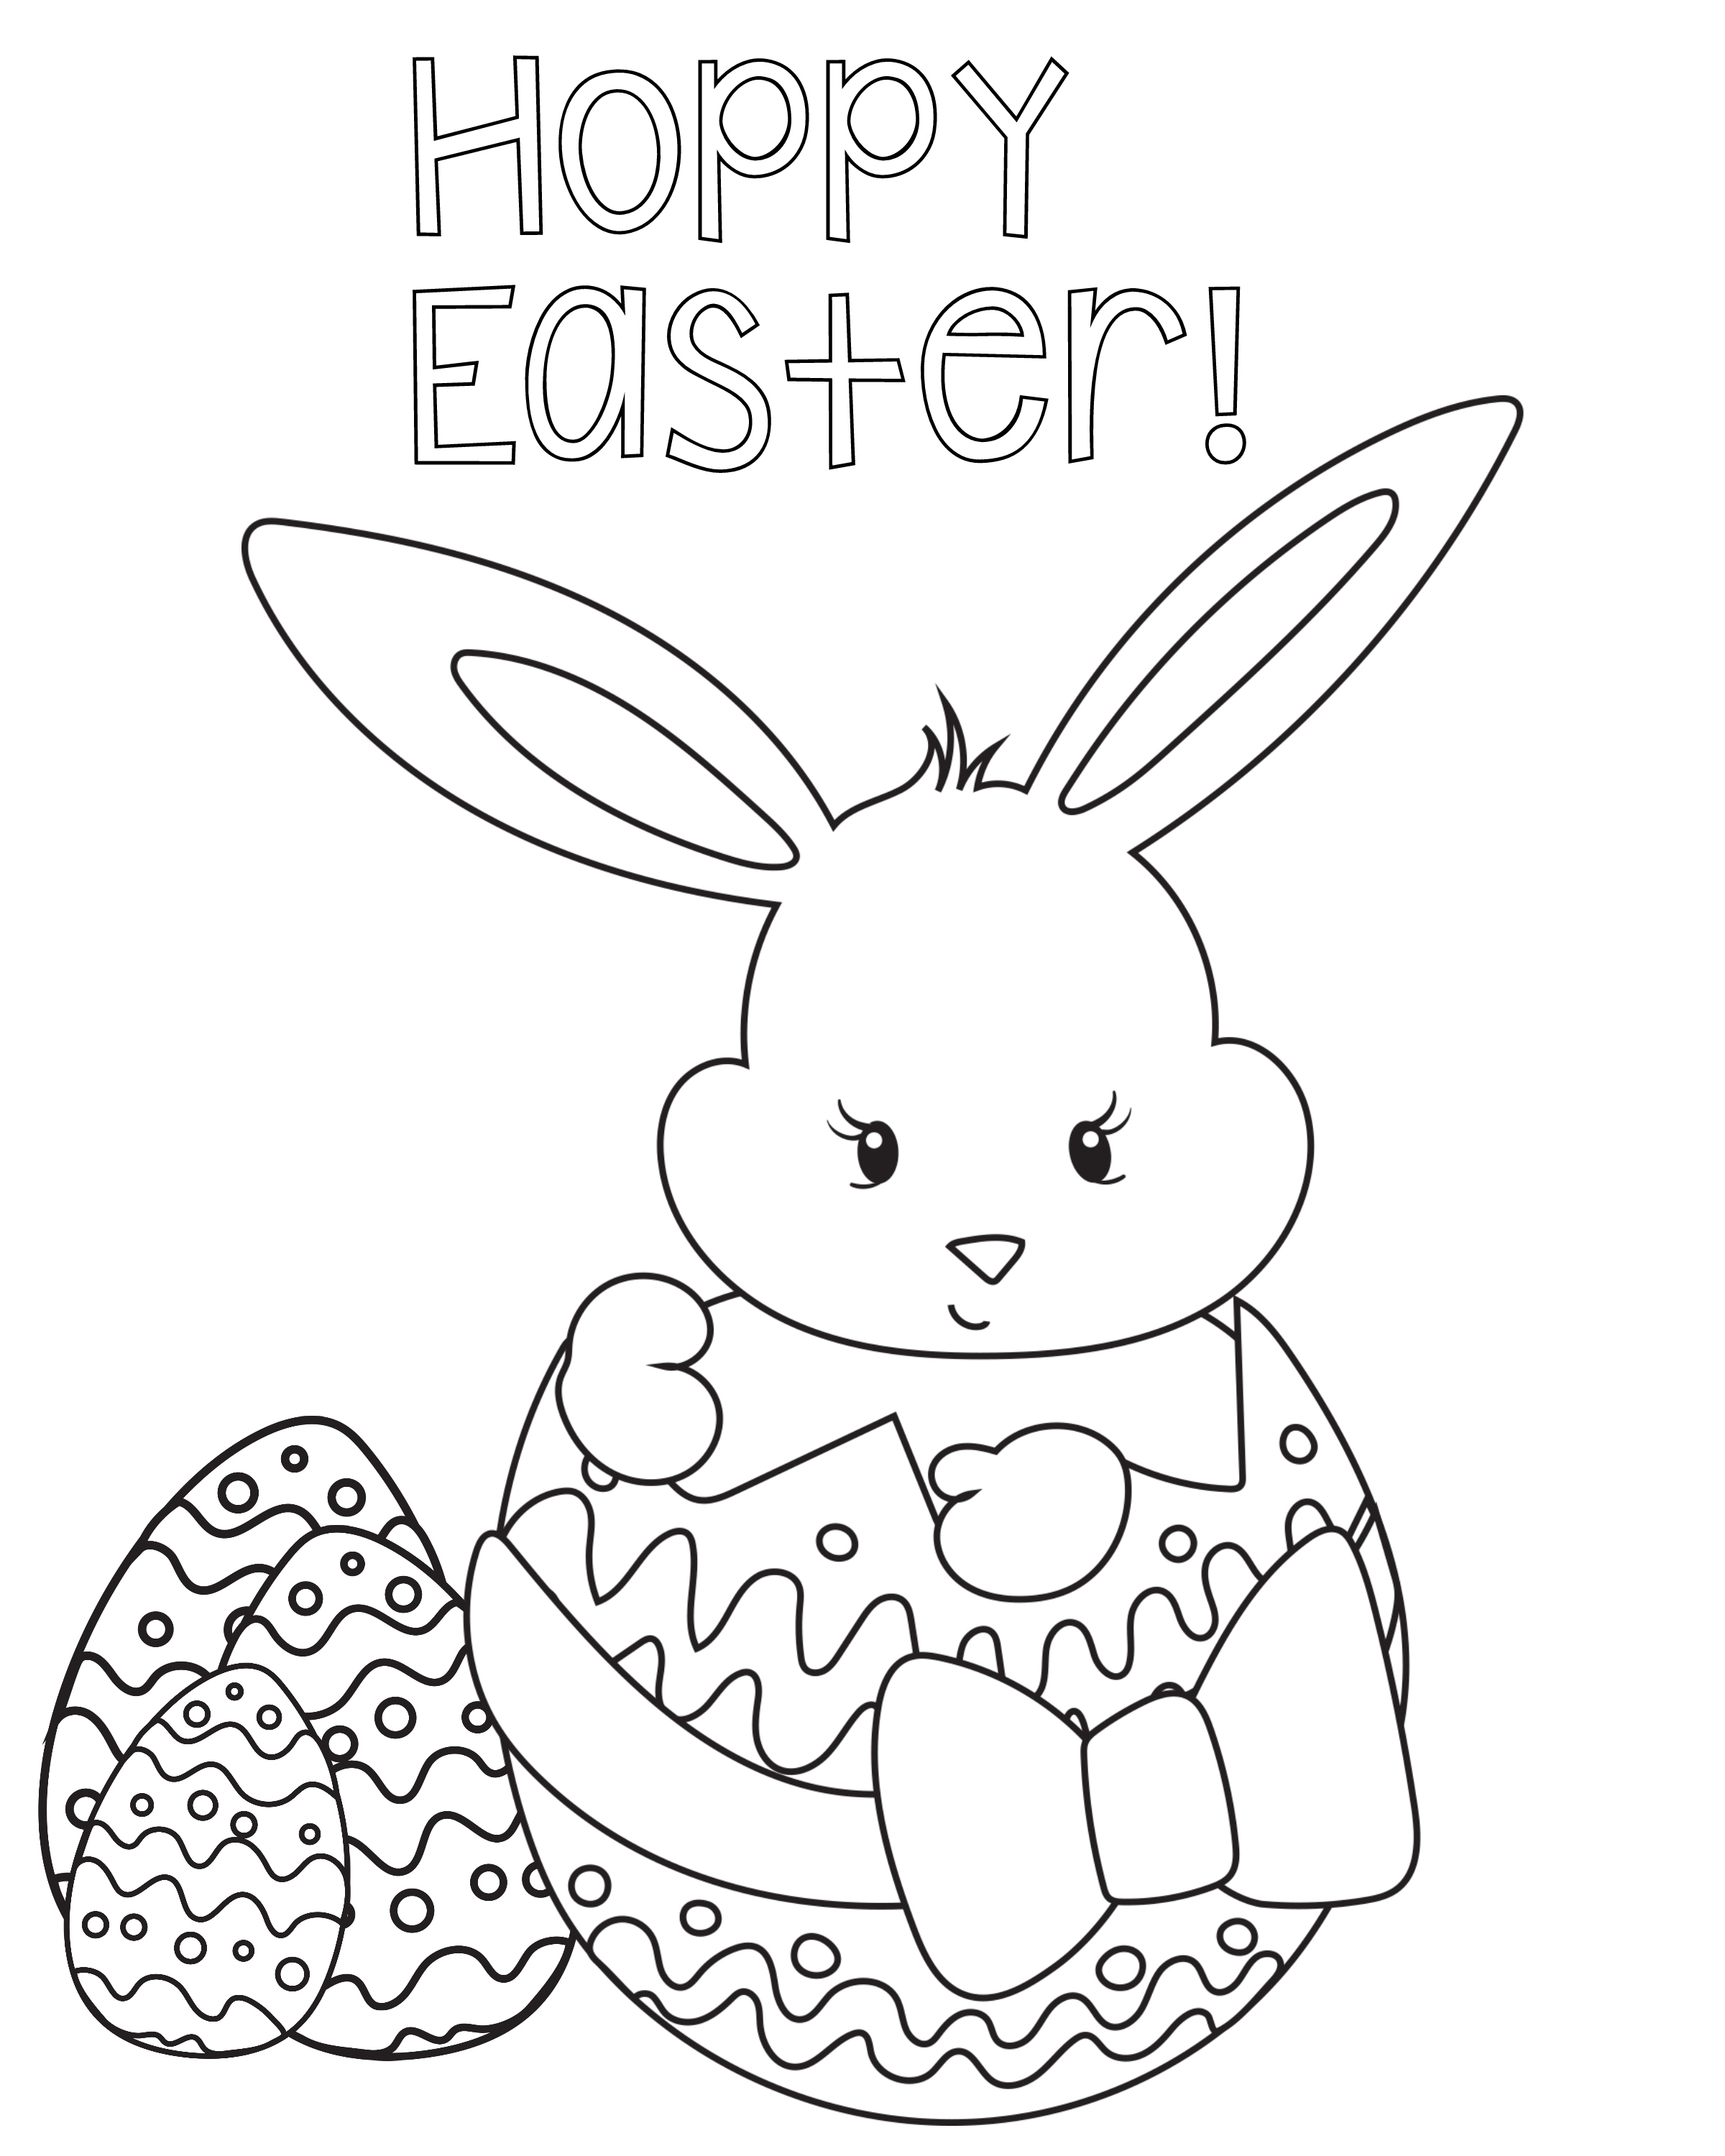 Delighted Bunny Print Out Coloring Pages Easter for Kids Crazy Printable Of Easter Coloring Printable Easter Coloring Pages Coloring Gallery